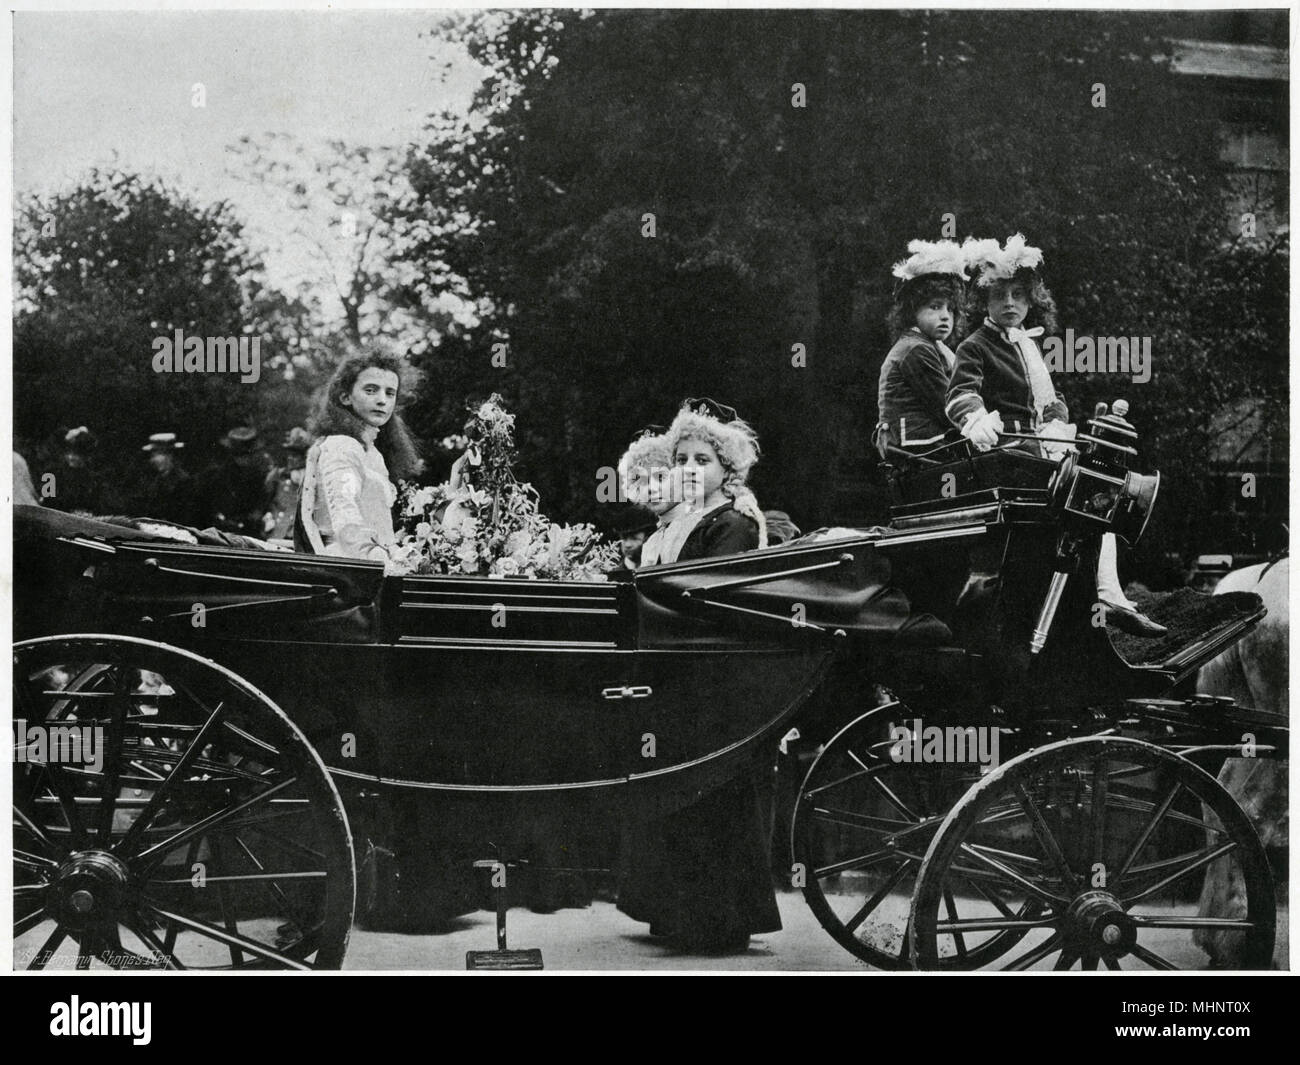 Formerly the Queen was always a scholar at the parish school and chosen by the committee, photograph showing the start of the procession at the Town hall in Knutsford, Cheshire, with bands playing and banners flying the to be crowned  'Queen of the May' and attendants in the carriage waiting to start.     Date: 1902 - Stock Image